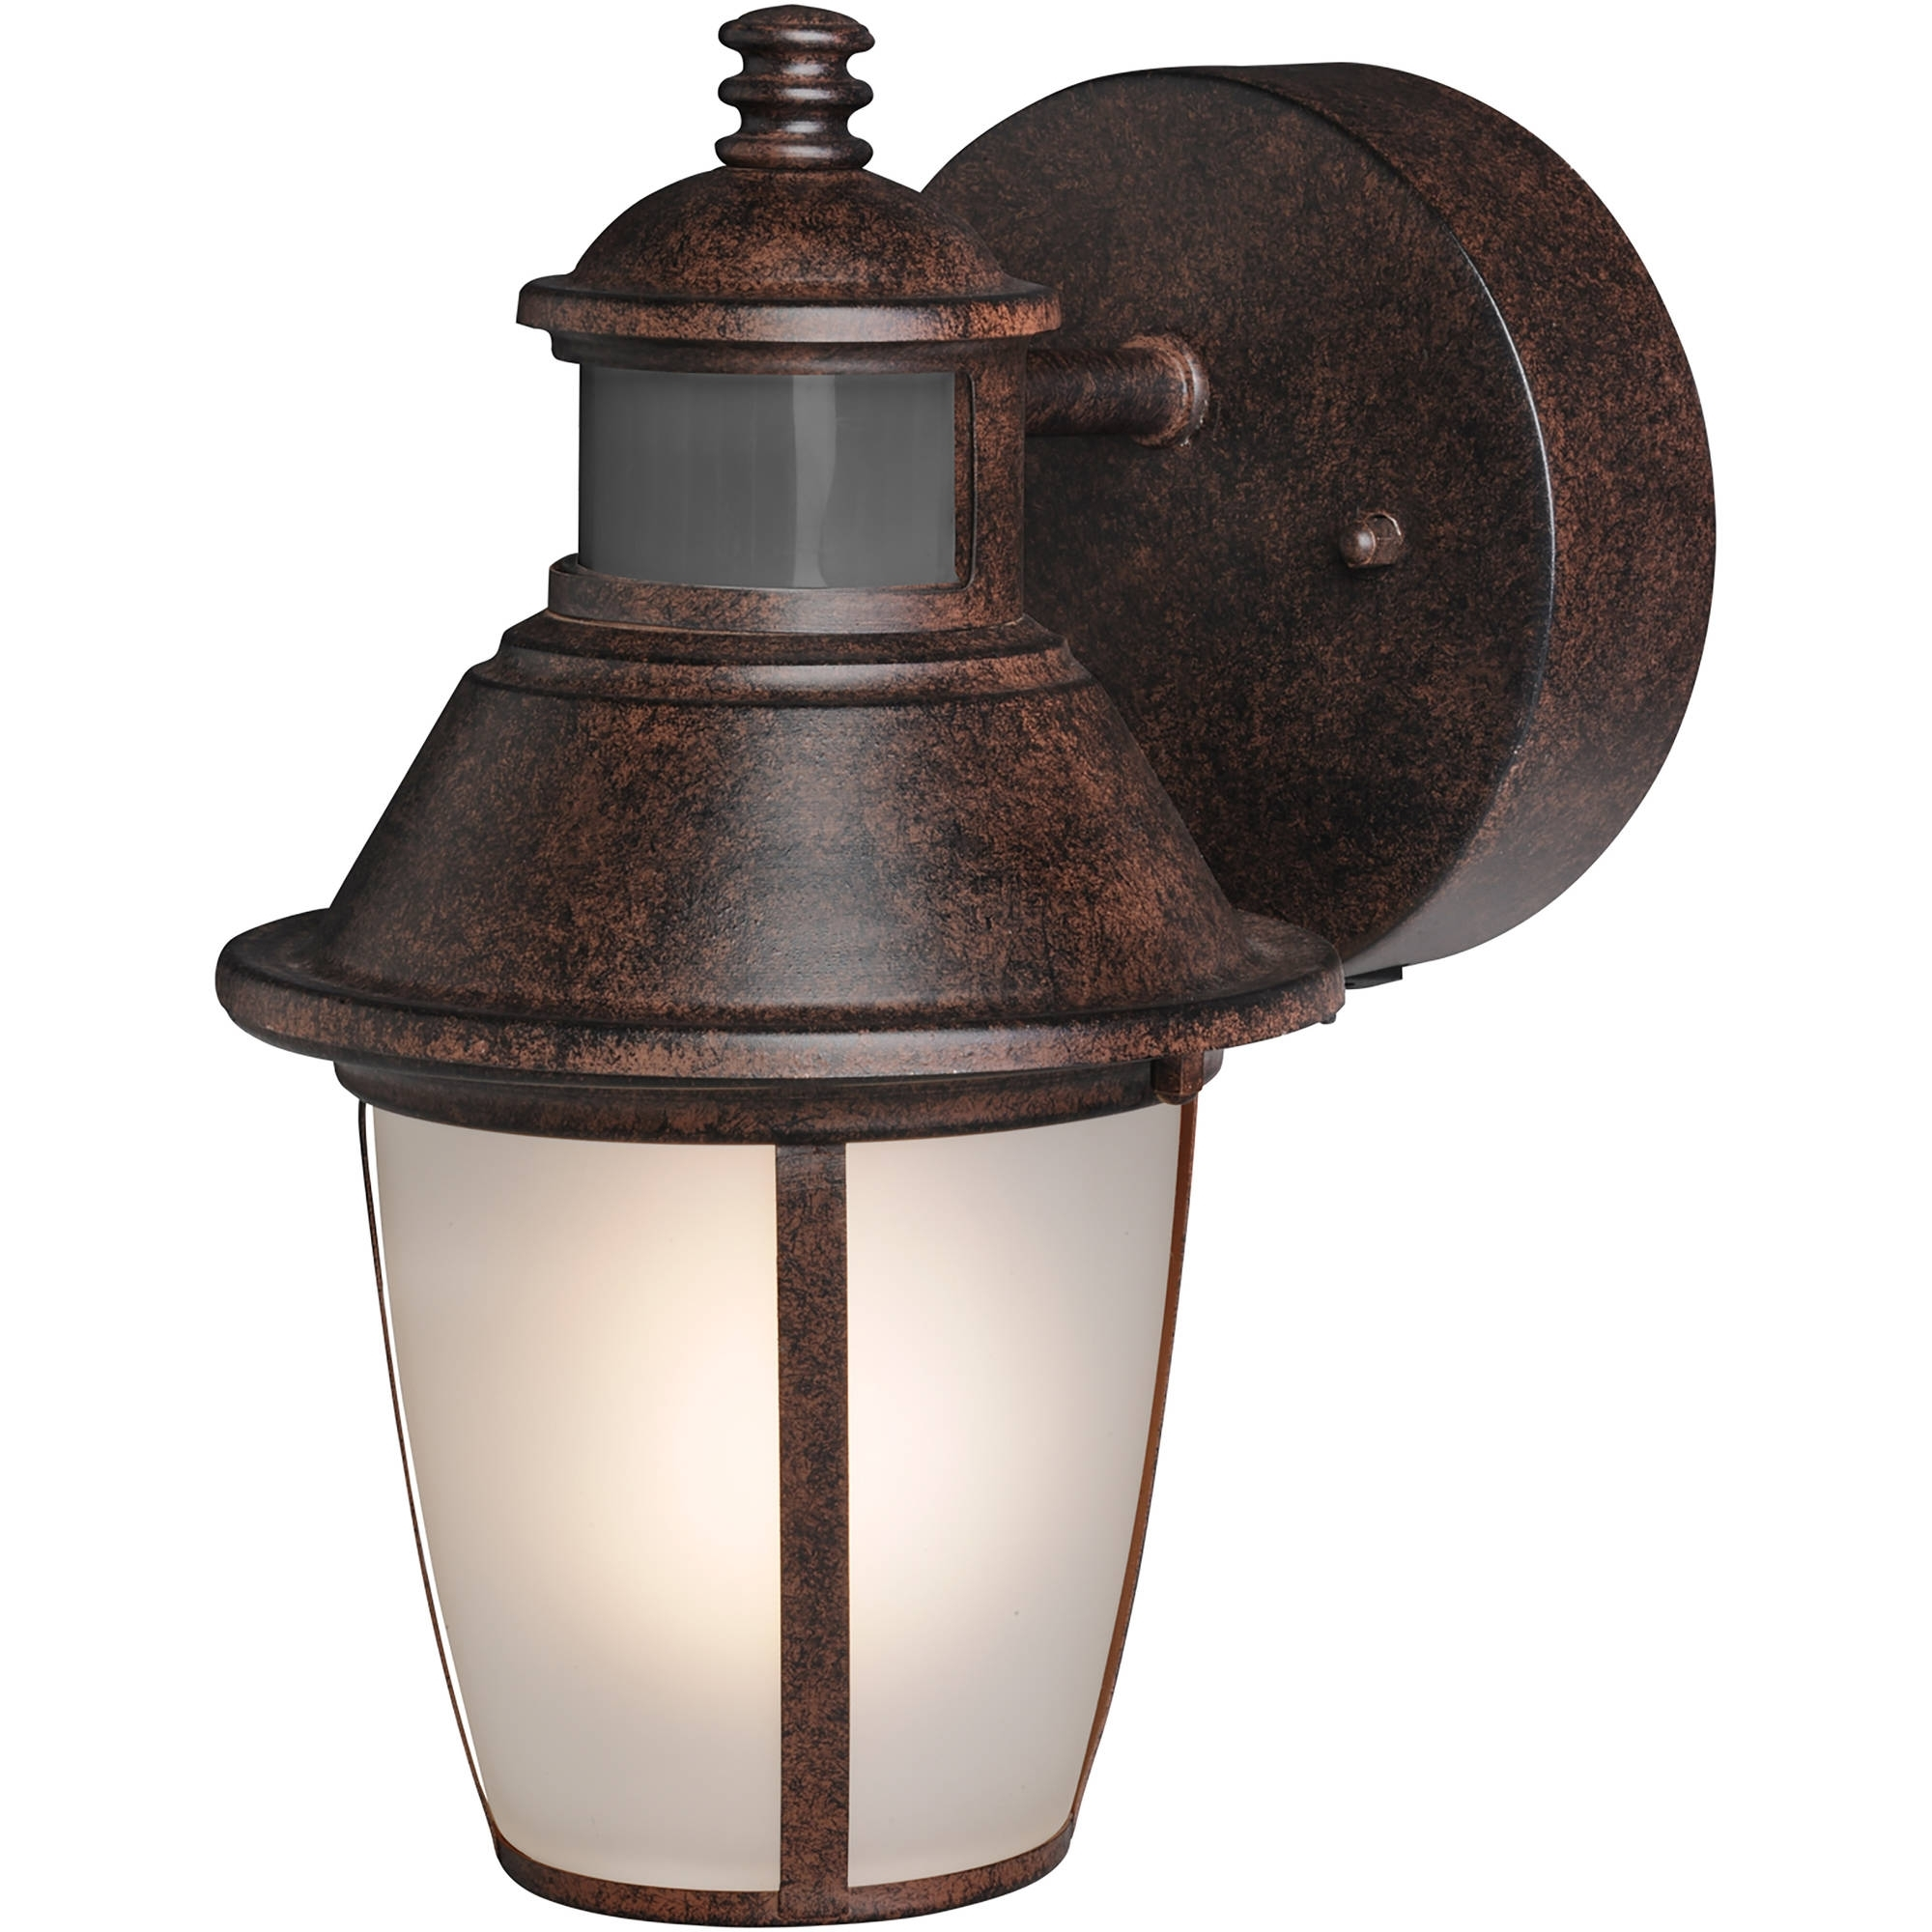 Brink's Led Outdoor Wall Lantern Motion Security Light, Bronze With Most Recent Dusk To Dawn Led Outdoor Wall Lights (Gallery 20 of 20)